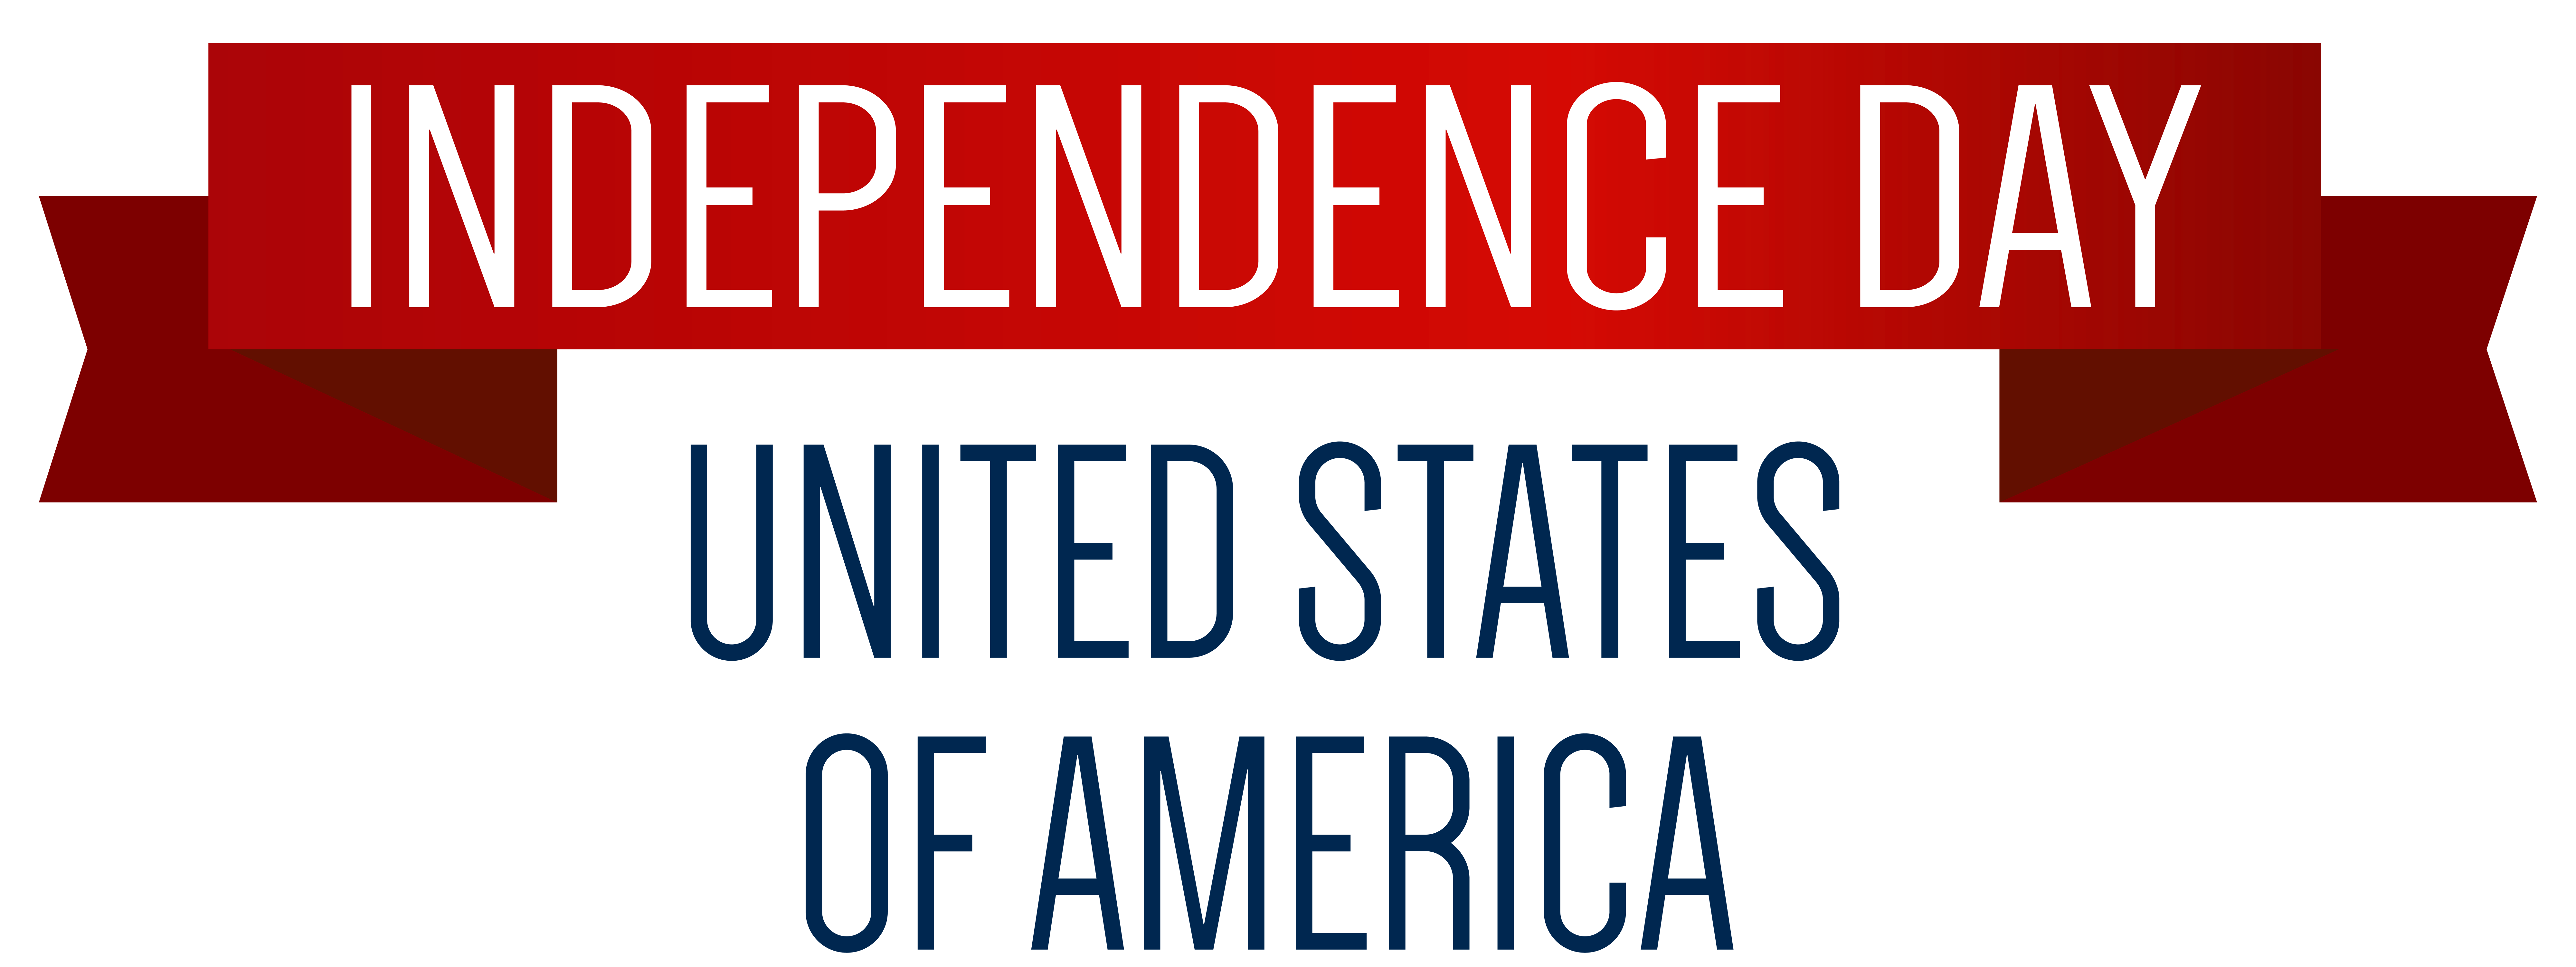 8000x3002 Usa Independence Day Banner Png Clip Art Imageu200b Gallery